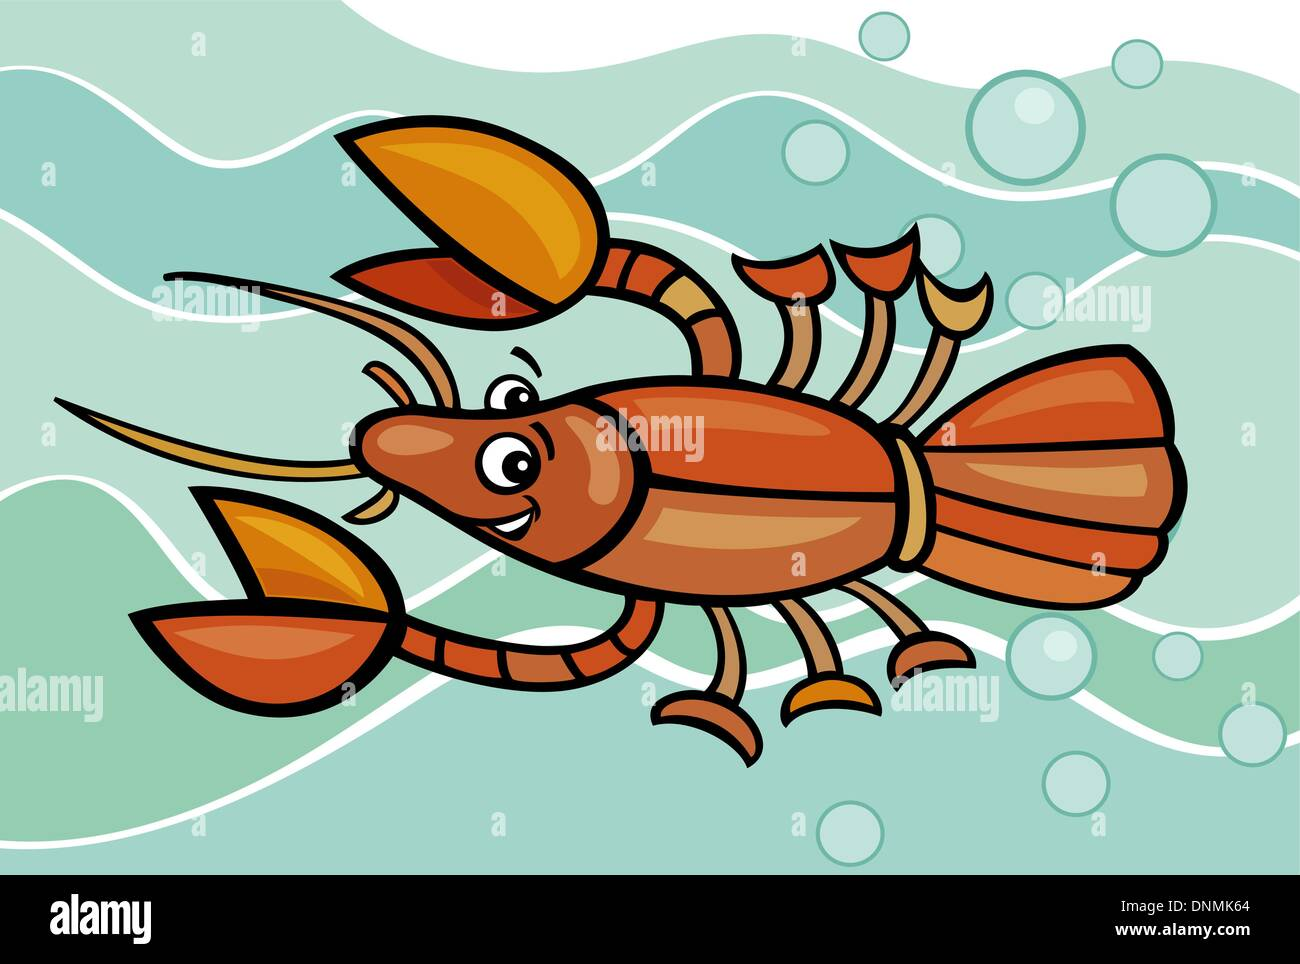 Cartoon Illustration of Funny Crayfish in the Water - Stock Vector